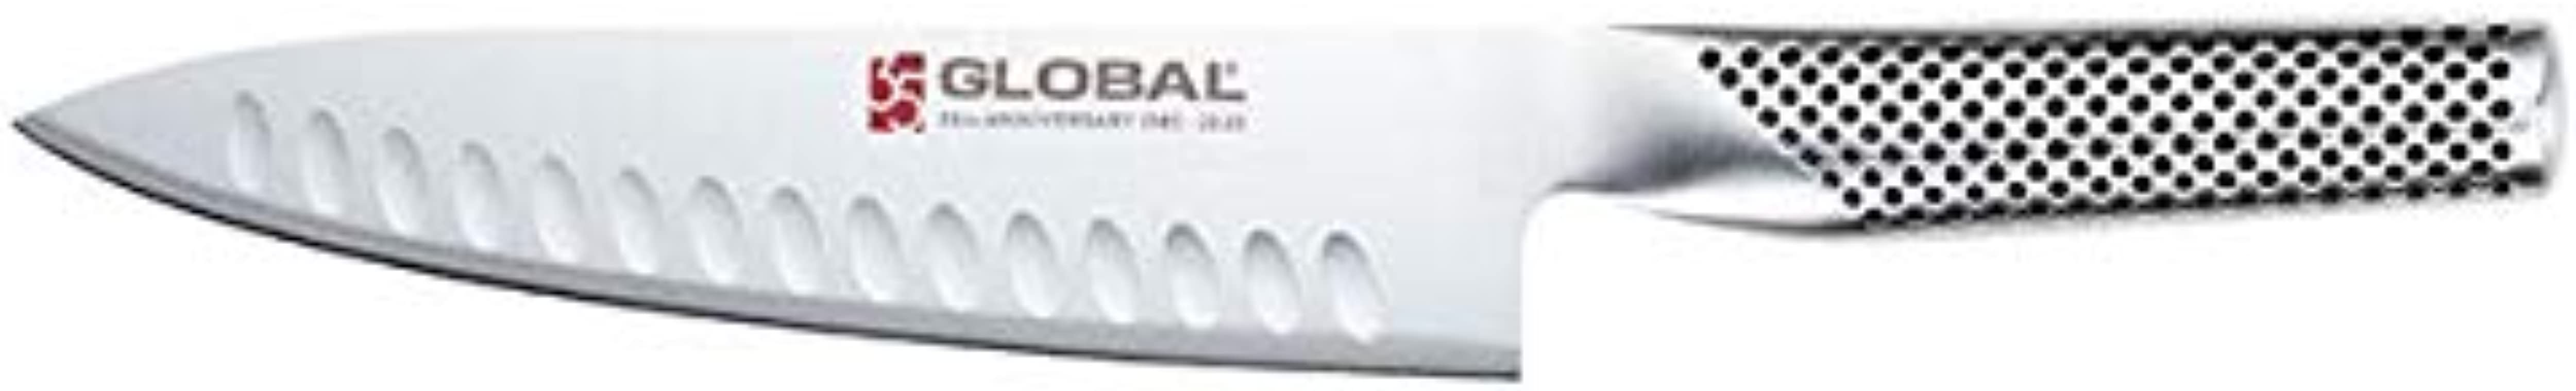 Global GS 96 AB Anniversary 7 5 Chef Kitchen Knife Silver